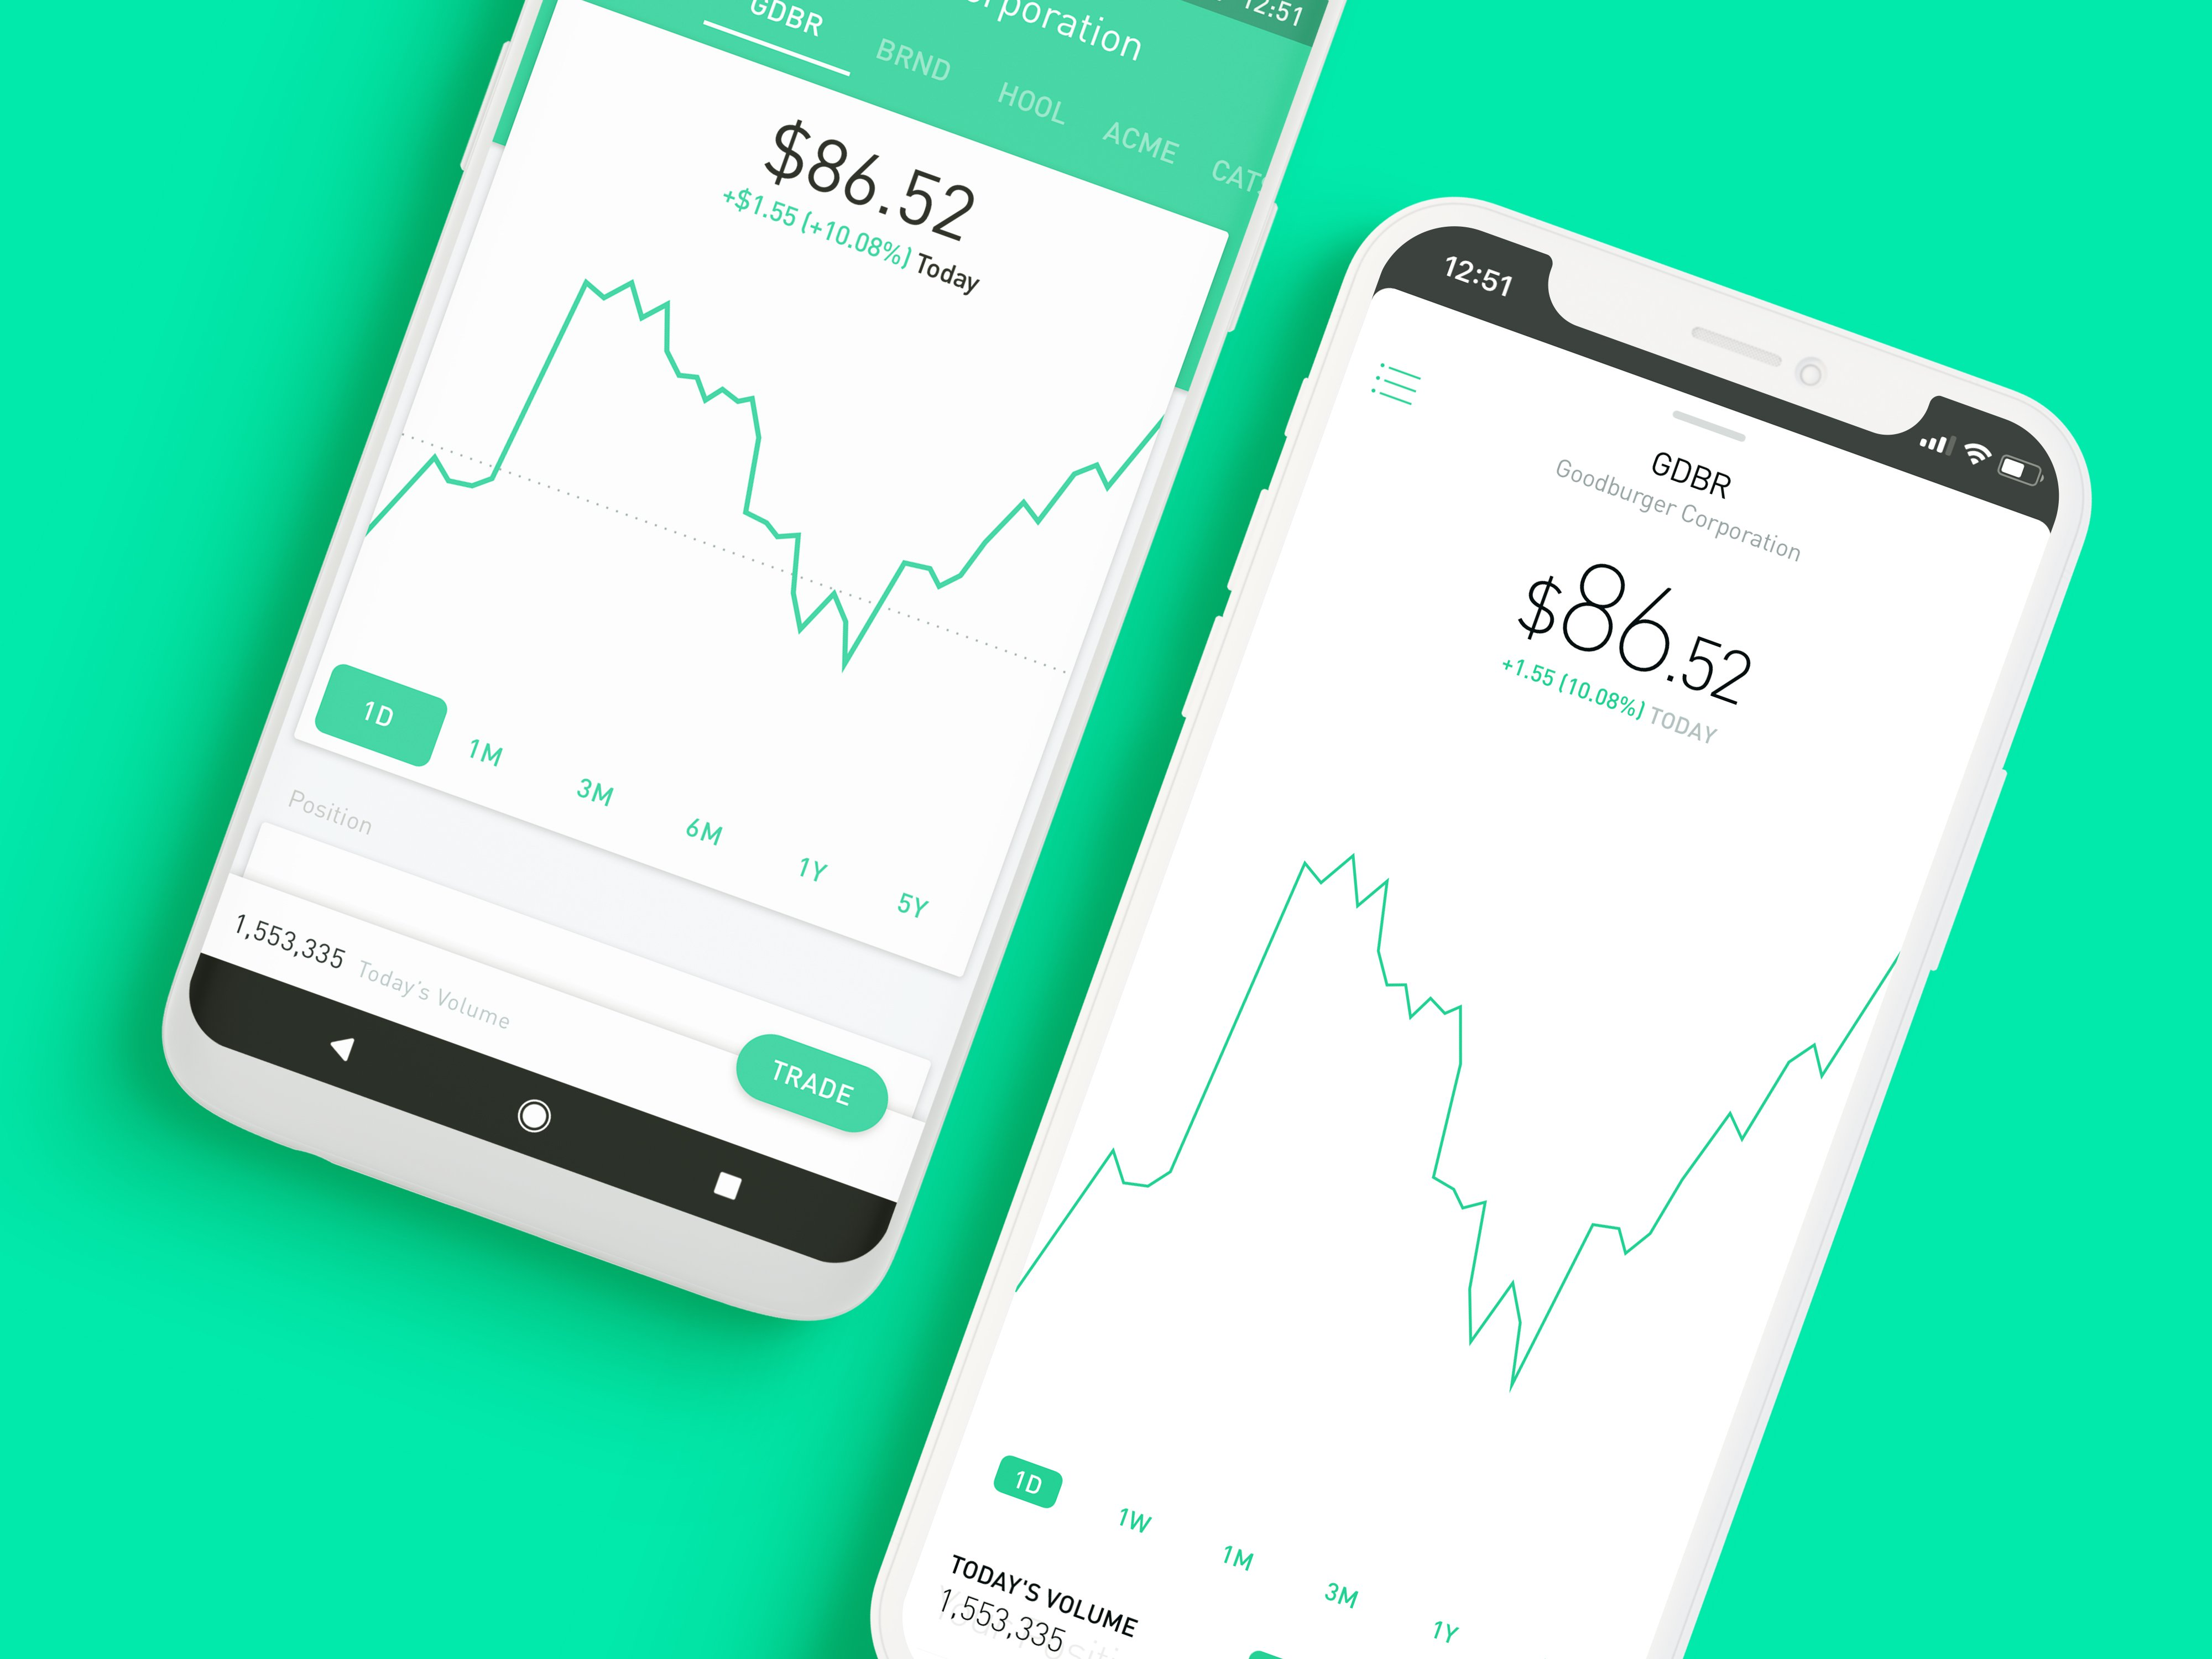 6 Penny Stocks To Watch - WealthLab